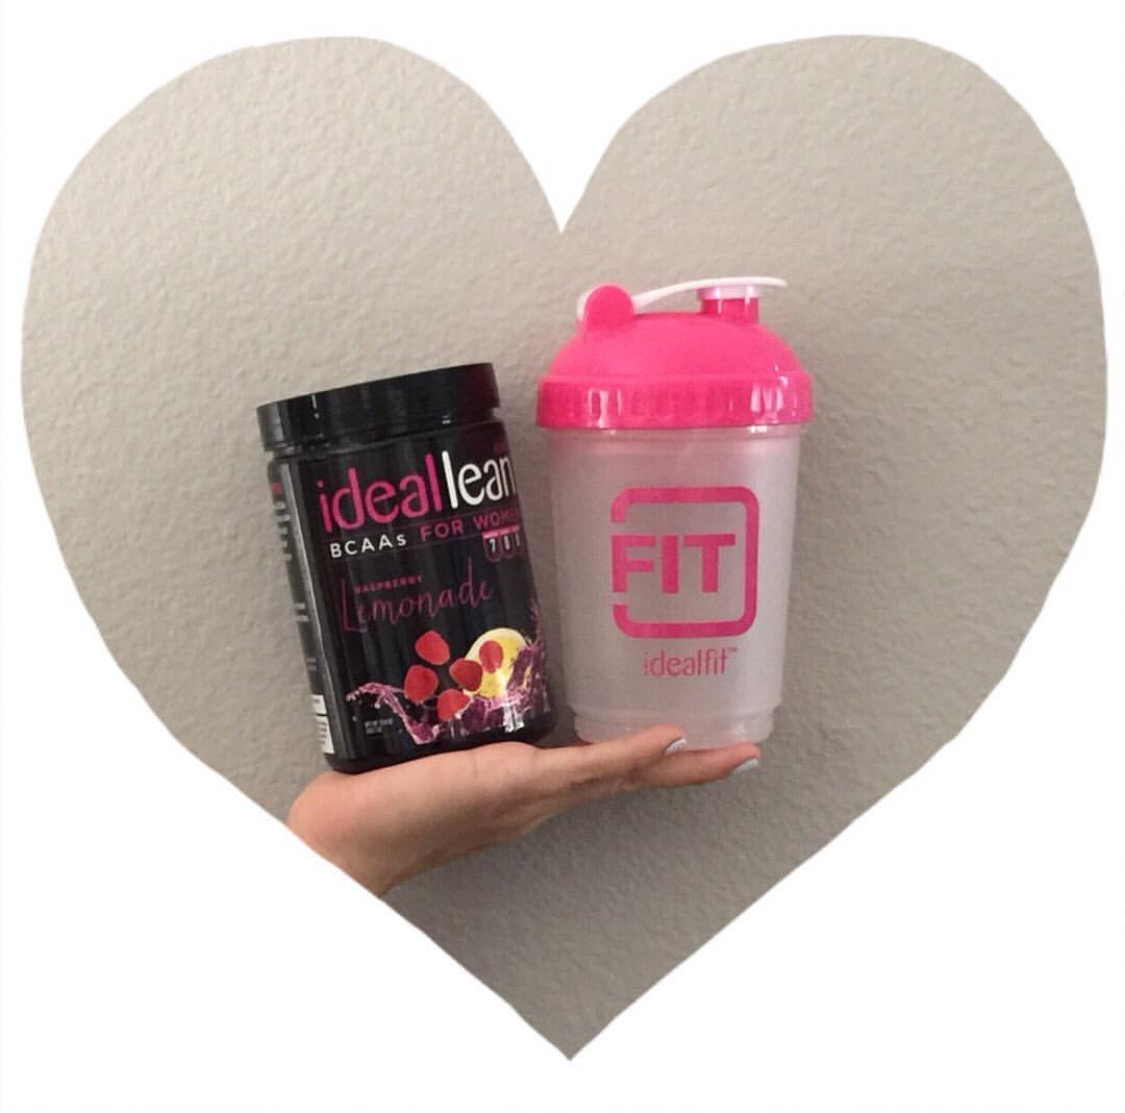 """- OUR FAVORITE BCCA's🙋🏼 IdealFit Raspberry Lemonade $34.99🙋🏻IdealFit Grape $34.99💓OUR FAVORITE SHAKER BOTTLEIdealFIt Multi Compartment Bottle $9.99We love the shape, size & it mixes great - not a protein loogie in sight!💵 10% OFF DISCOUNT CODES:@muncher_cruncher- MCFIT@biceps.after.babies- AMBERB10🤷🏼♀️🤷🏻♀️SO WHAT ARE BCAA's?👶🏻 SHORT ANSWER: BCAAs can help you get more out of your workouts. Like our pal @muncher_crunchermentioned in our last post--drink them before, during, or after your workouts.👵🏻 LONGER ANSWER: Branched Chain Amino Acids (specifically the essential amino acids leucine, isoleucine and valine) comprise around 35% of your body's muscle protein. You're body doesn't make these Aminos on its own--you MUST get them from food or supplements. They can help prevent muscle breakdown, stimulate protein synthesis, increase muscle repair, reduce fatigue and increase recovery!👱🏼♀️💪IDEALFit tells us:""""If you're serious about improving muscle recovery, building lean muscle, and burning fat, the last thing you want is to reach for a men's supplement packed with a bunch of calories and sugar to refuel after training. IdealLean BCAAs is specifically designed to maximize women's weight loss and jumpstart lean muscle growth! Each serving of IdealLean BCAAs offers 5 g of BCAAs to reduce muscle soreness and promote muscle building -all without any sugar or calories!"""""""